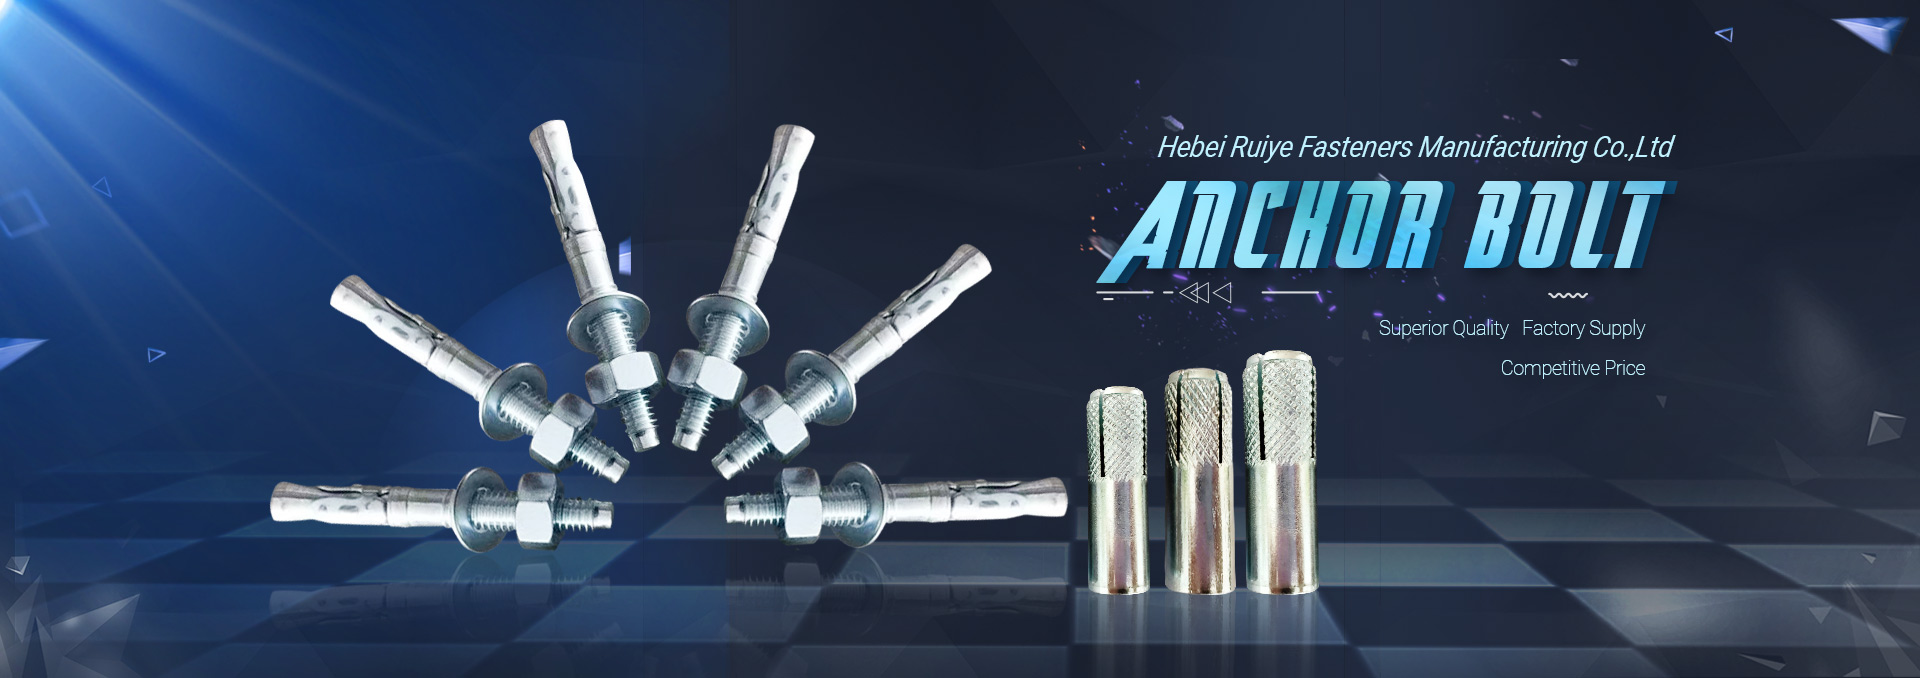 Anchor bolts Market Size, Share, Growth-Trends, Emerging-Technologies, Software-Platforms, 2020 Global Development, Business-Opportunities, Advancements & Future-Forecast 2025